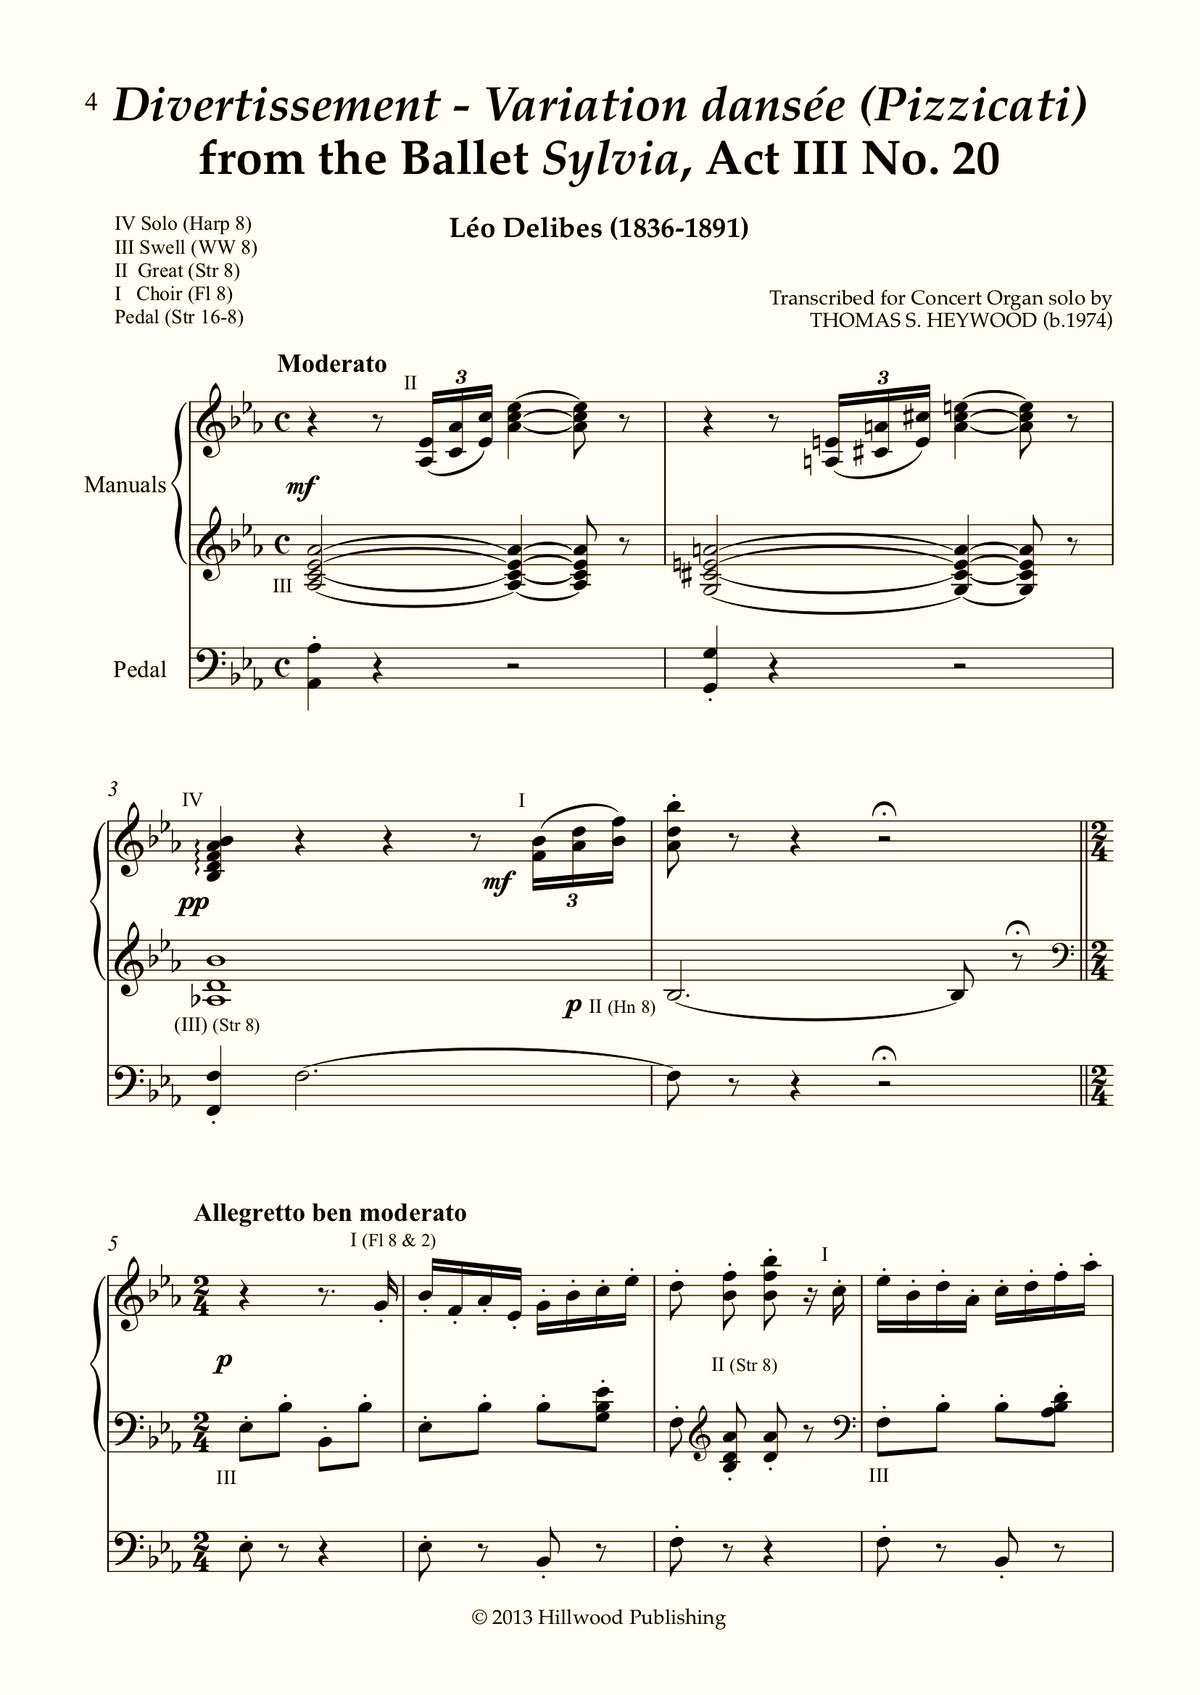 Delibes/Heywood - Divertissement - Variation dansée (Pizzicati) from the Ballet Sylvia, Act III No. 20 (Score) | Thomas Heywood | Concert Organ International